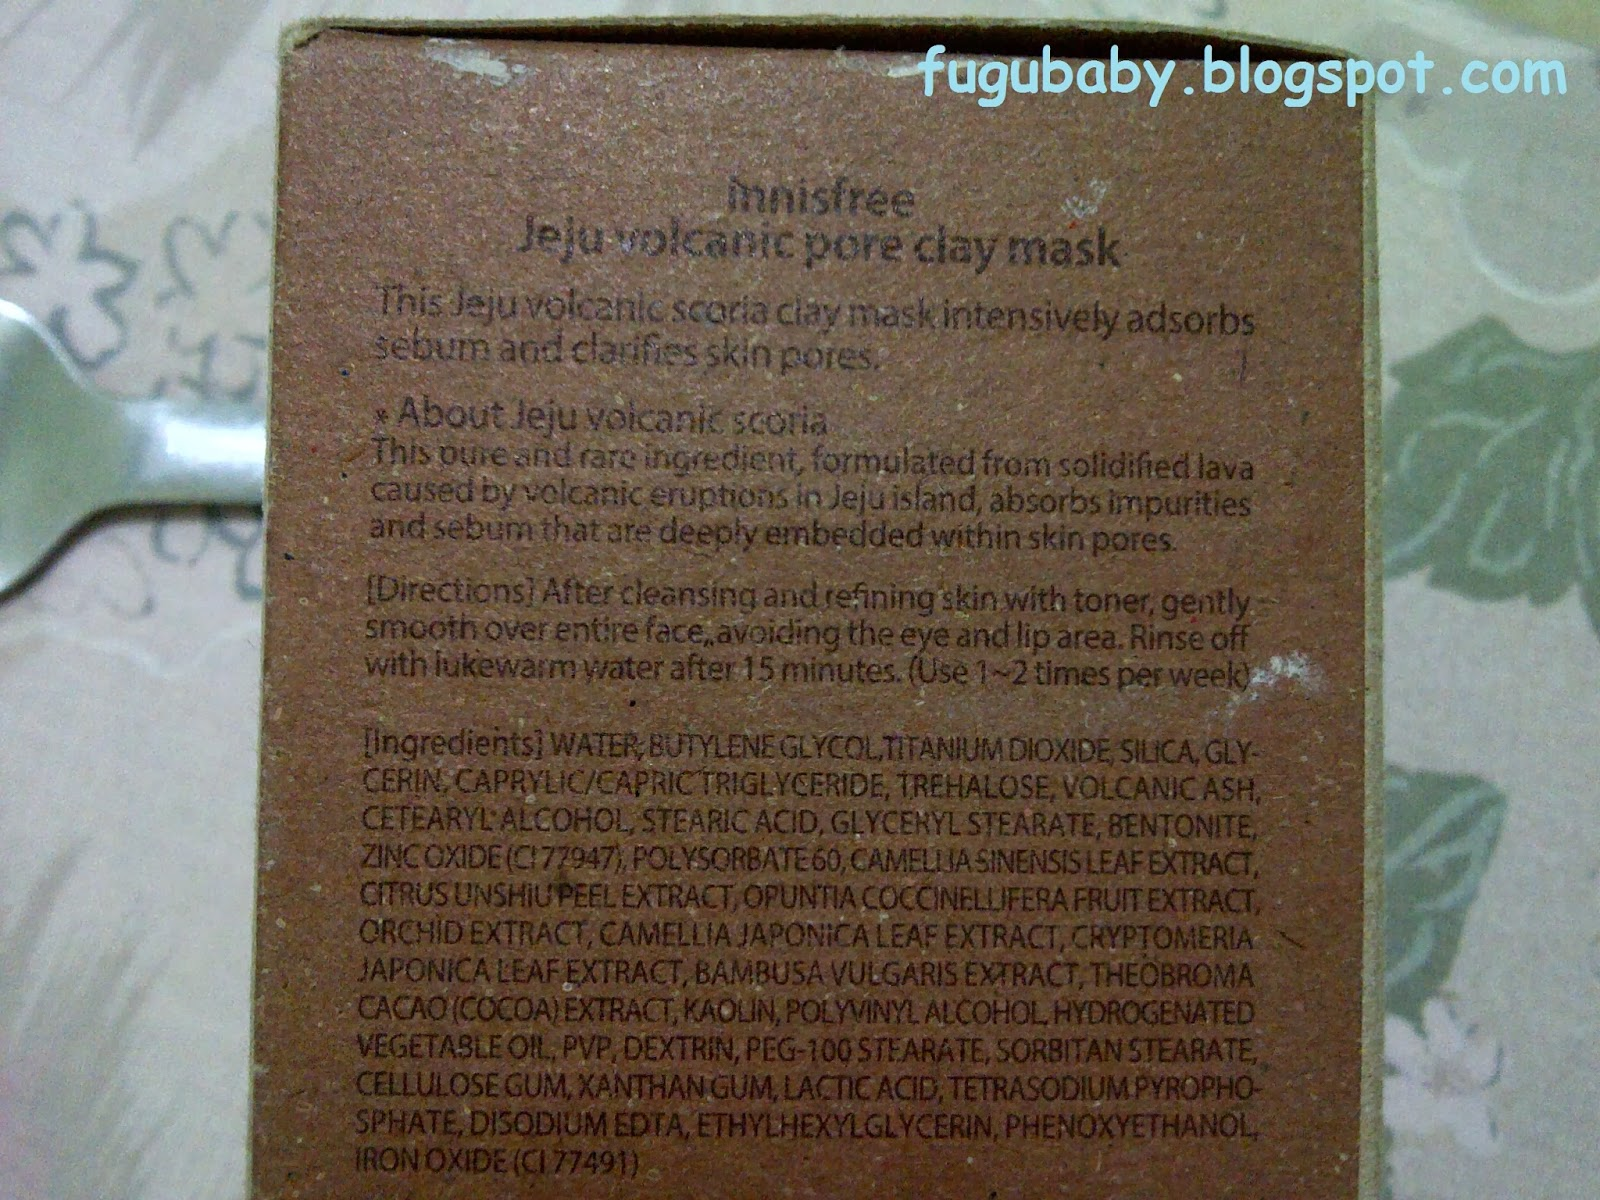 how to use jeju volcanic pore clay mask